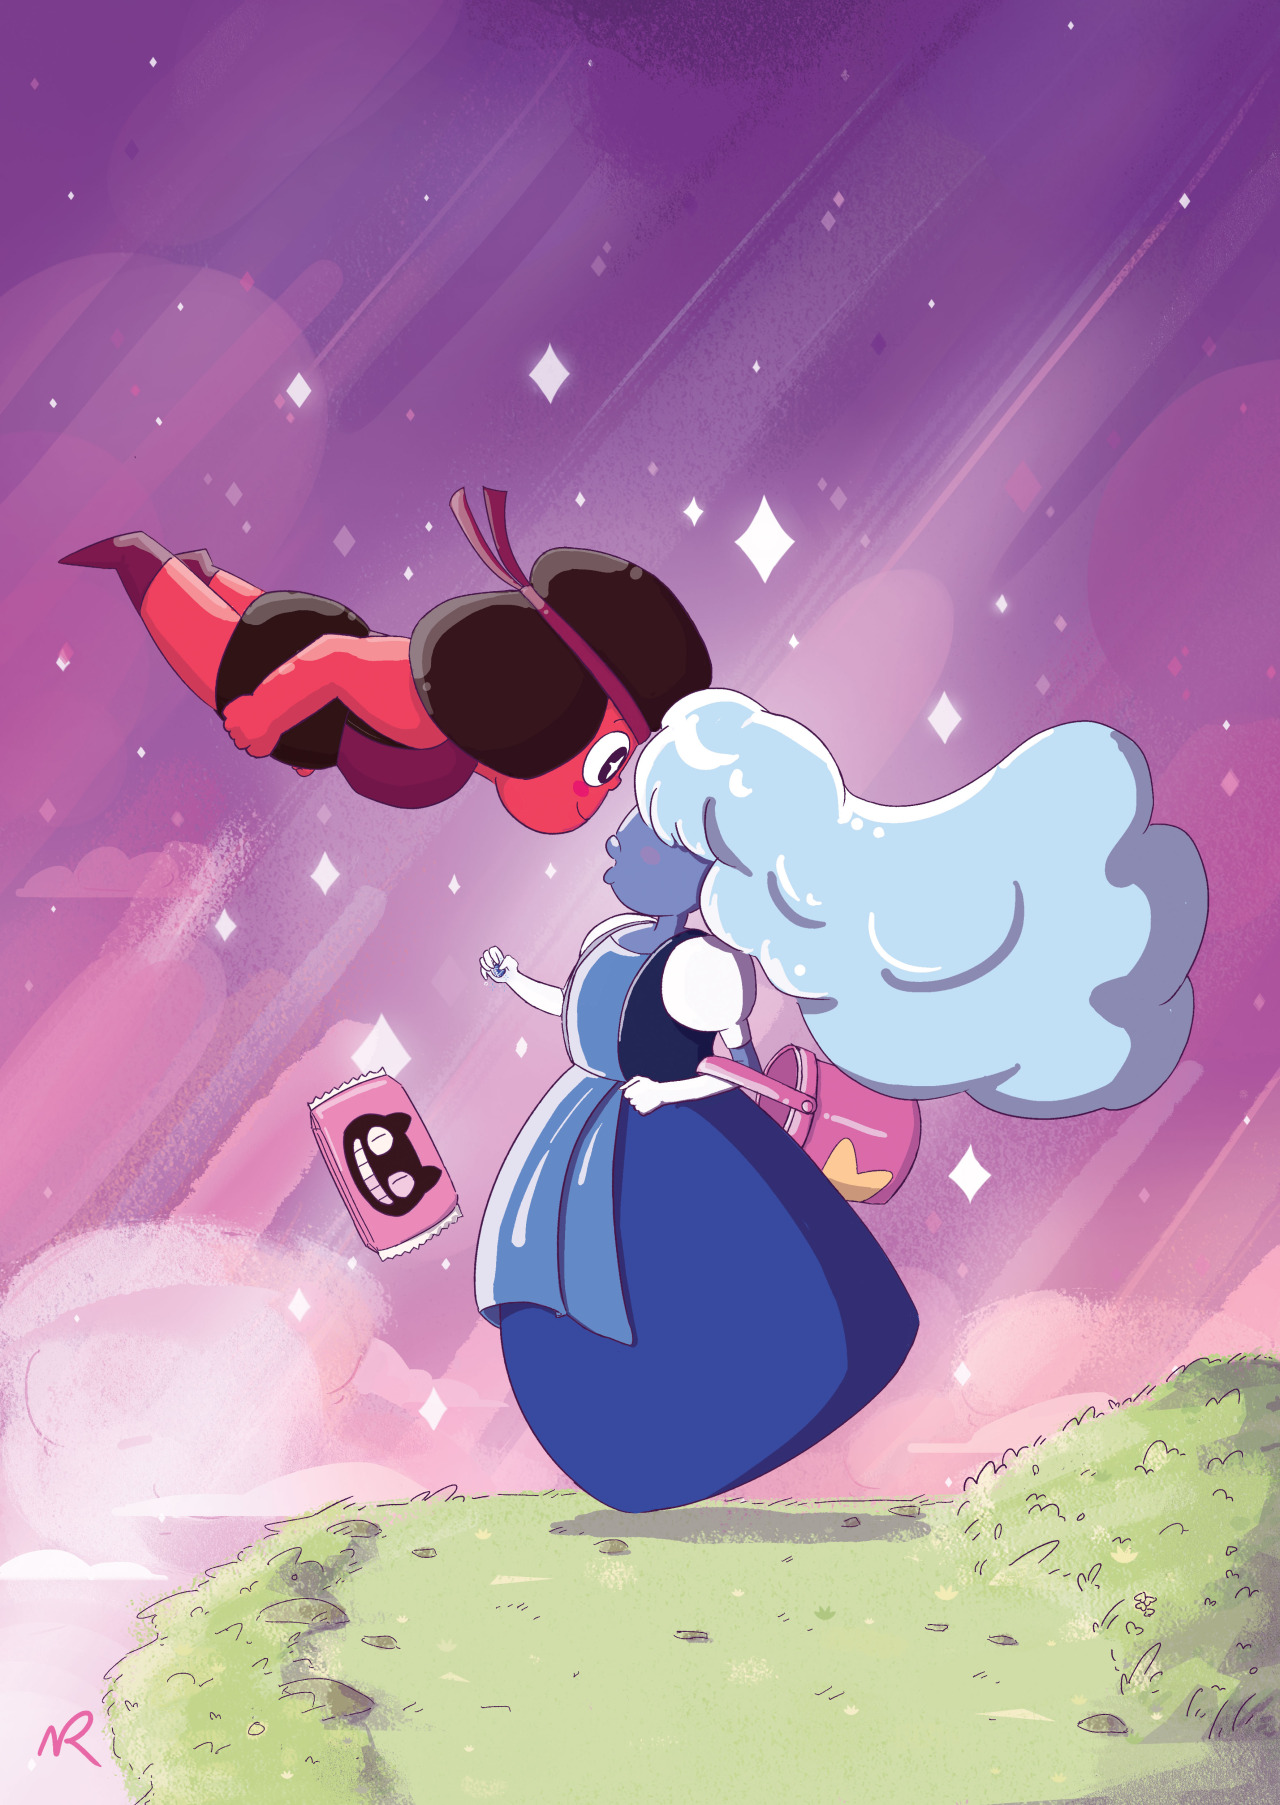 steven universe images Ruby and Sapphire ft. Cookie Cat HD wallpaper and background photos